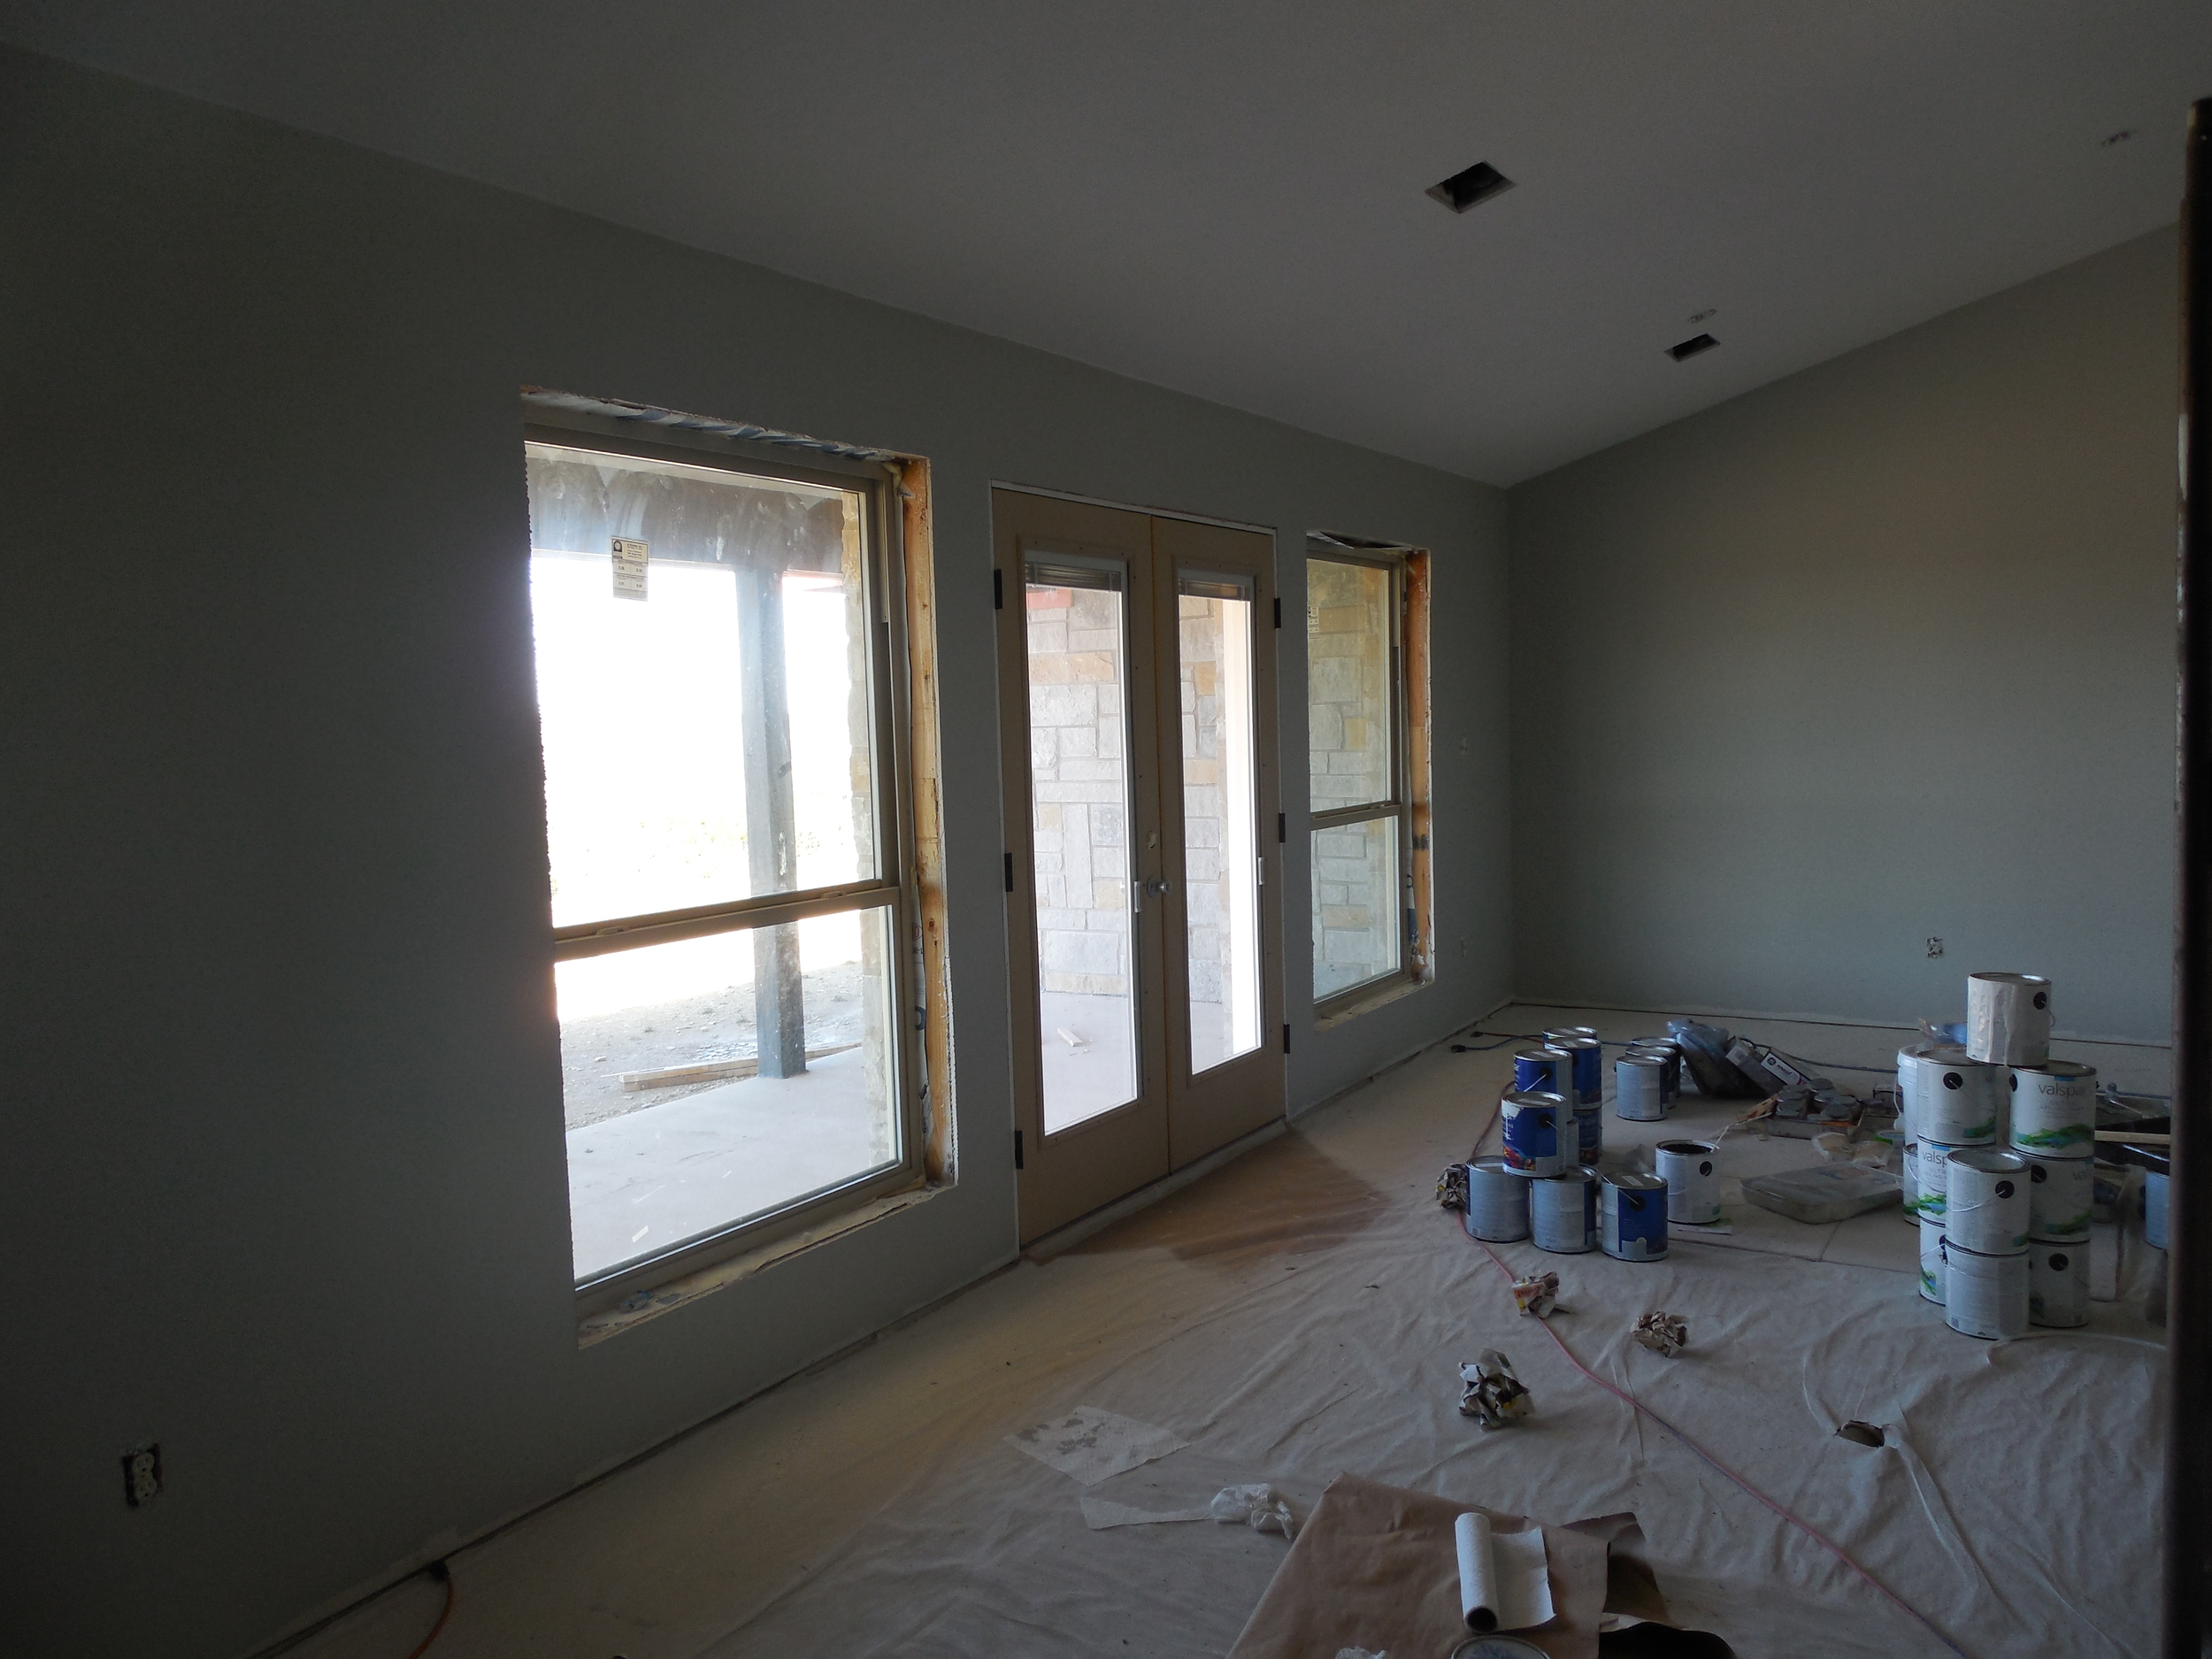 facing the dining area.